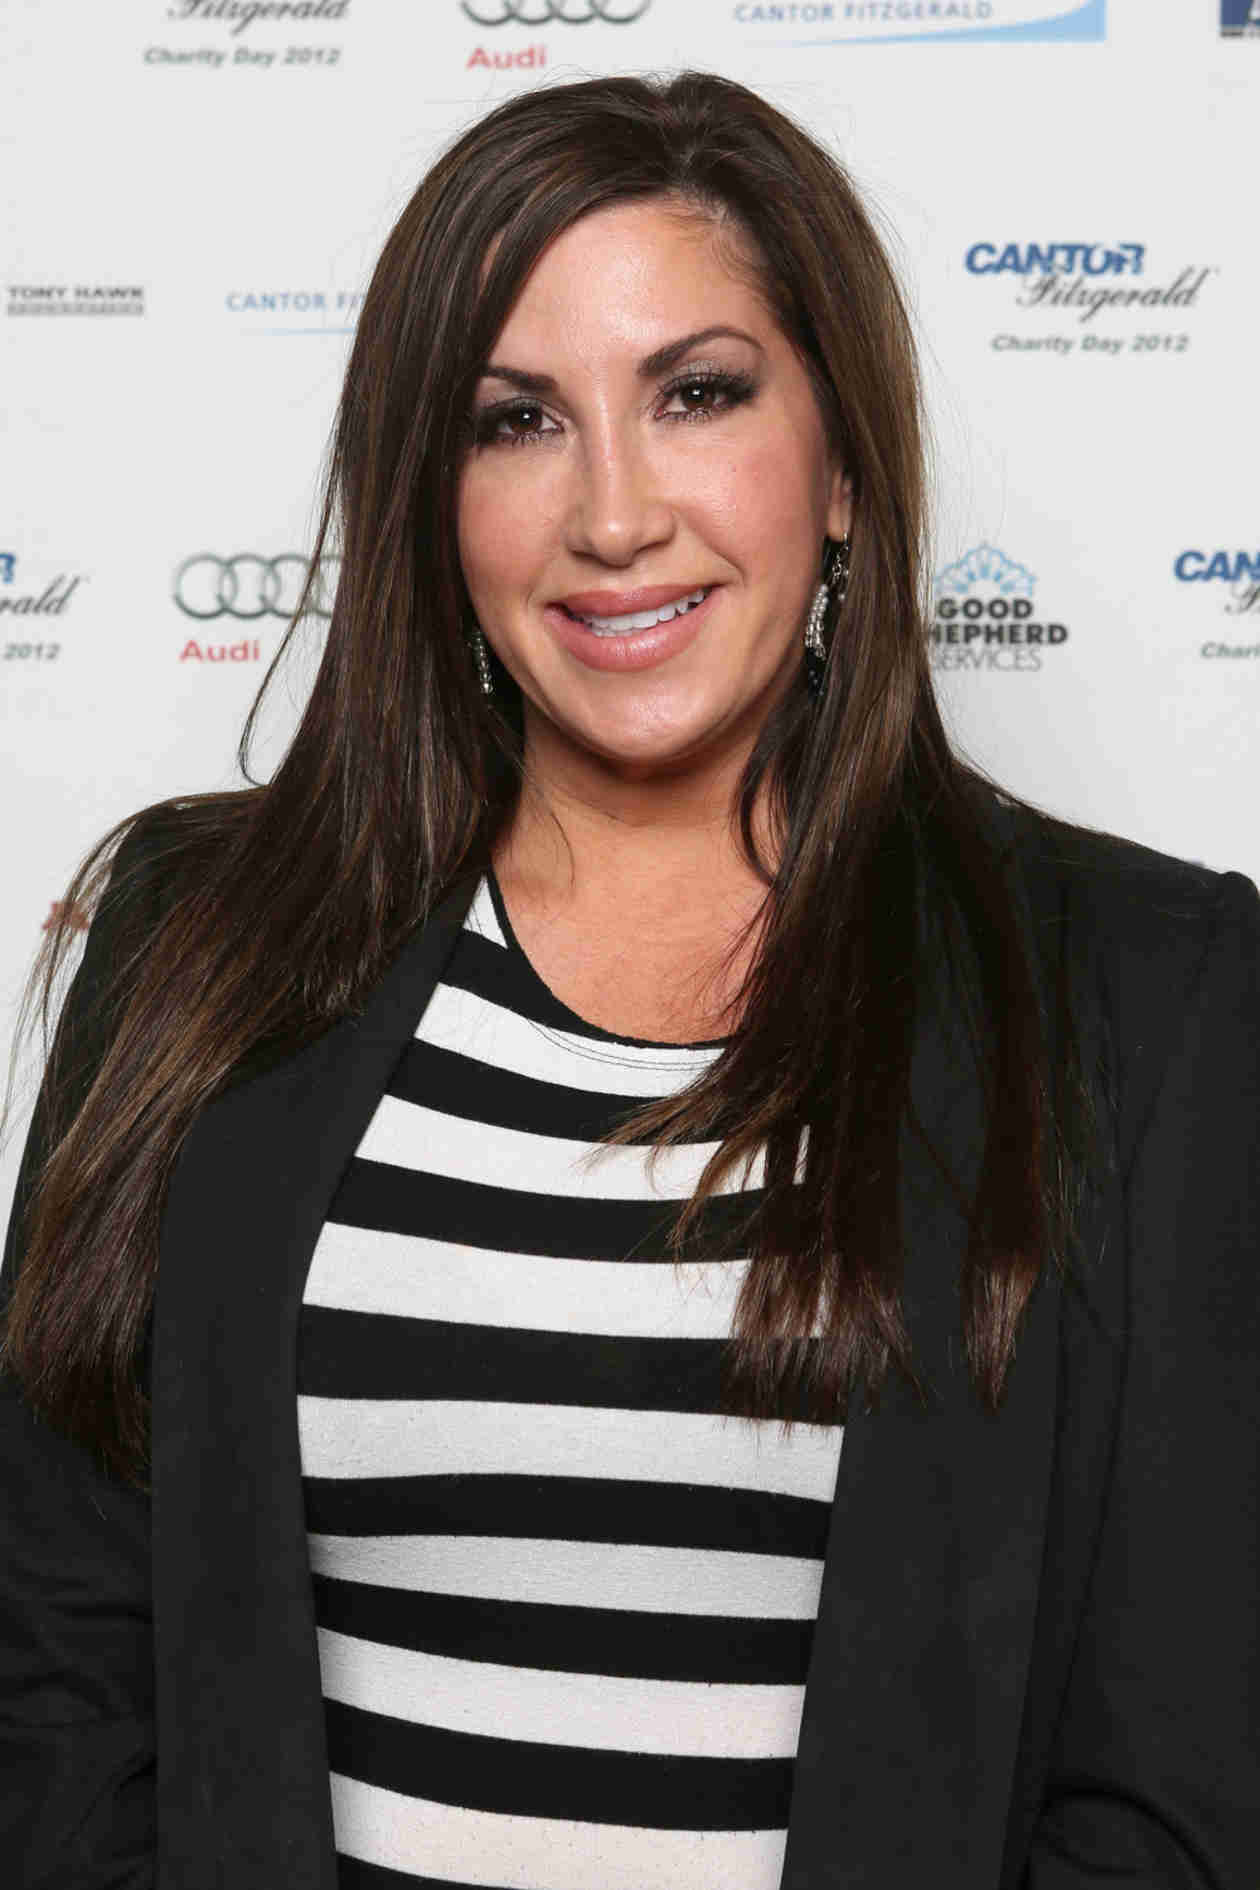 Why Wasn't Jacqueline Laurita at the RHONJ Season 3 Reunion? She Says…